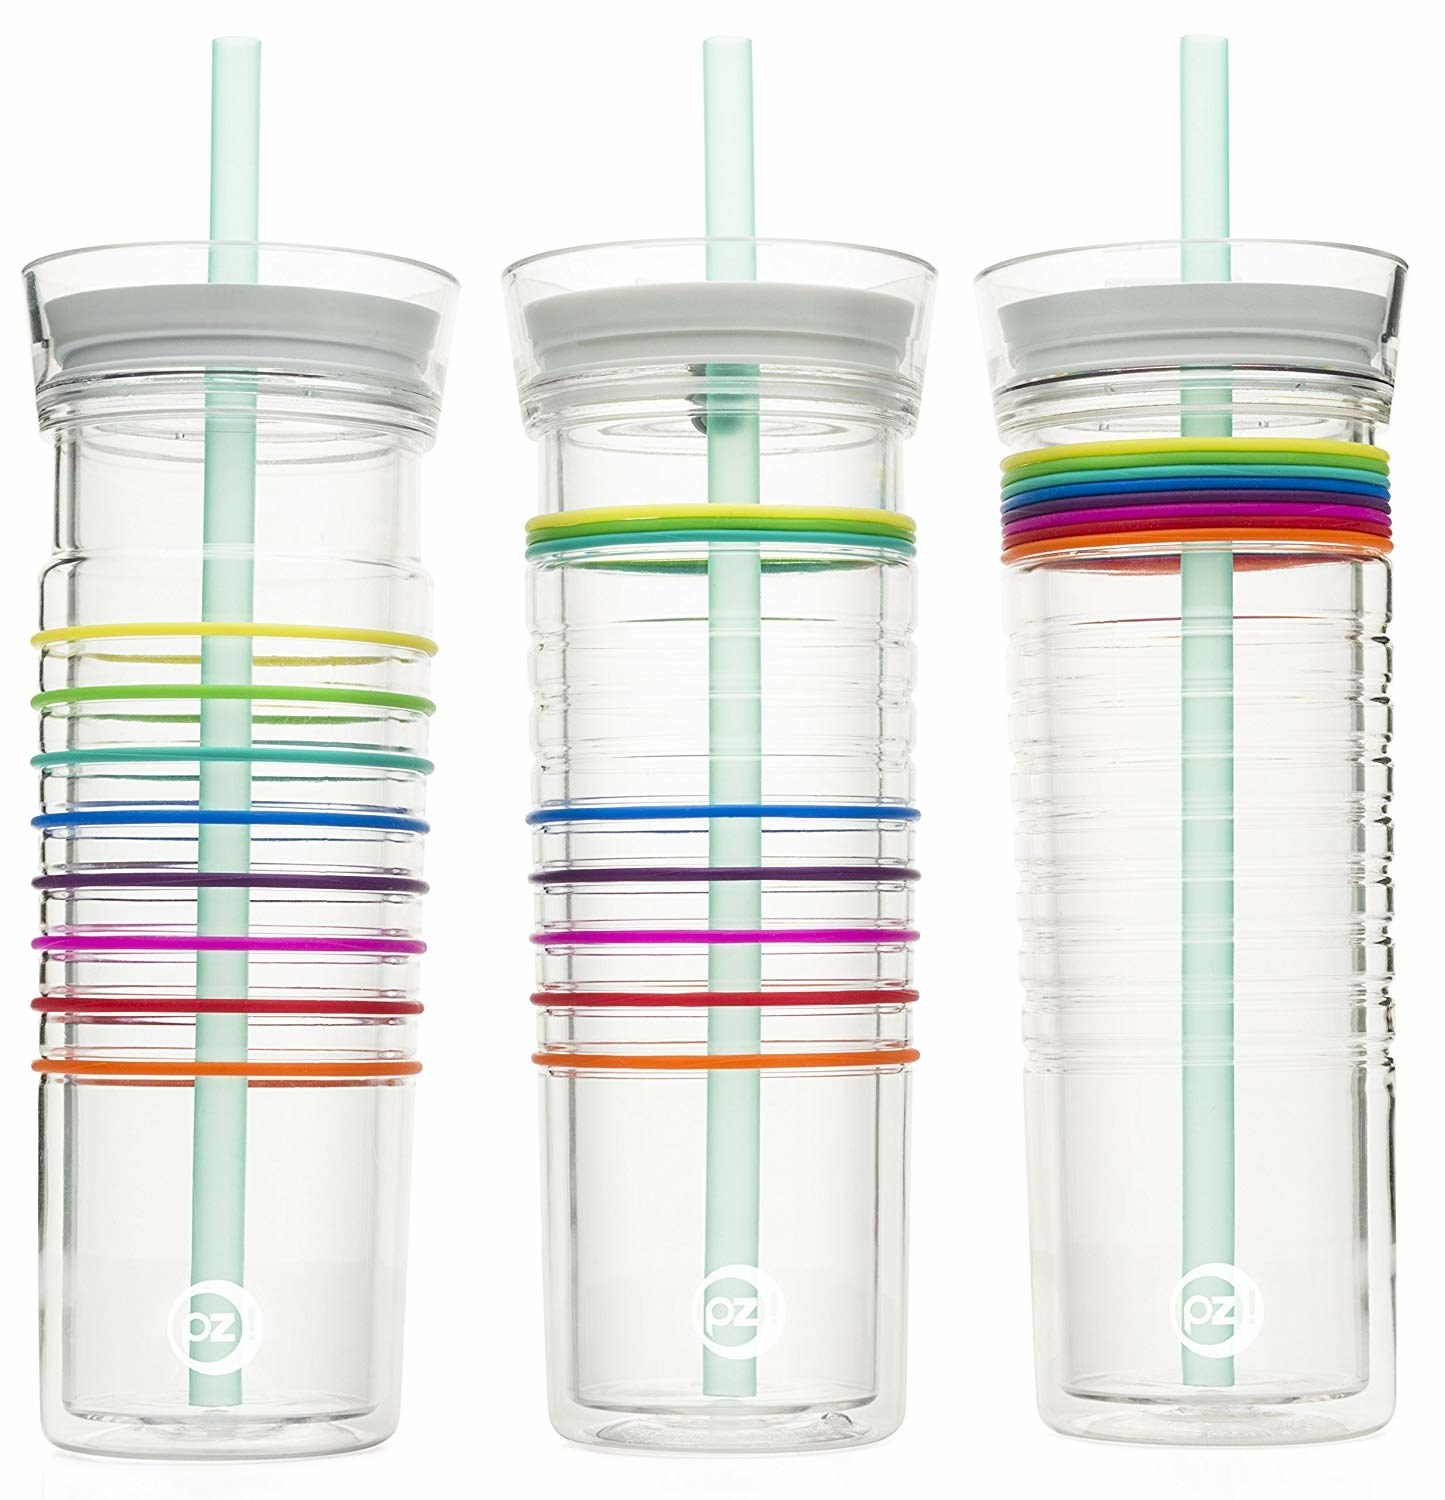 As long as you drink enough water, a cup or two of coffee won't significantly affect your hydration levels, says Qureshi.To help you hydrate, you can get a nifty tumbler with colorful bands that help you keep track of your water intake. Get it from Amazon for $13.15+.